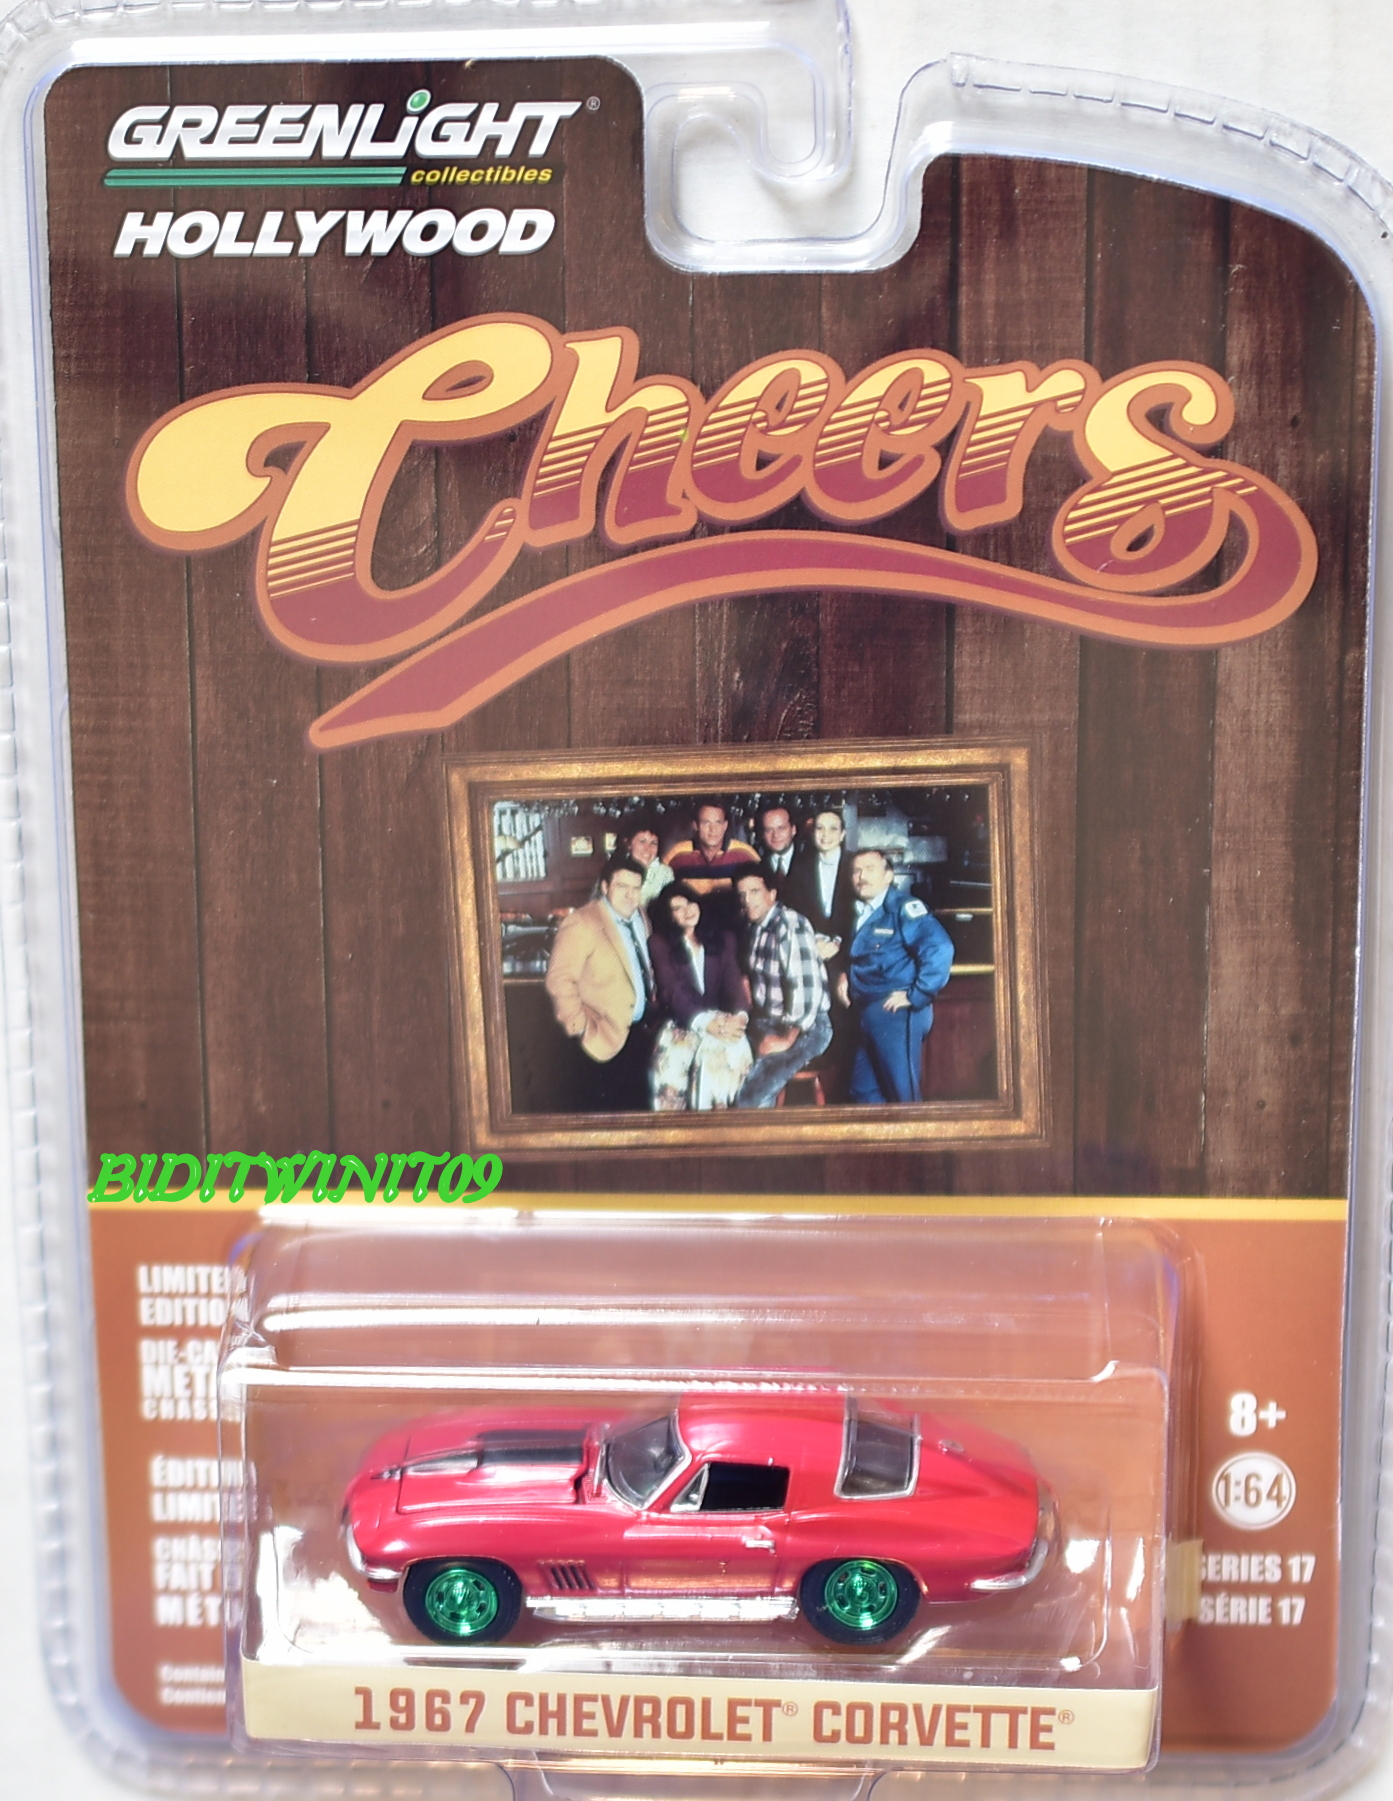 GREENLIGHT 2017 HOLLYWOOD SERIES 17 1967 CHEVROLET CORVETTE GREEN MACHINE